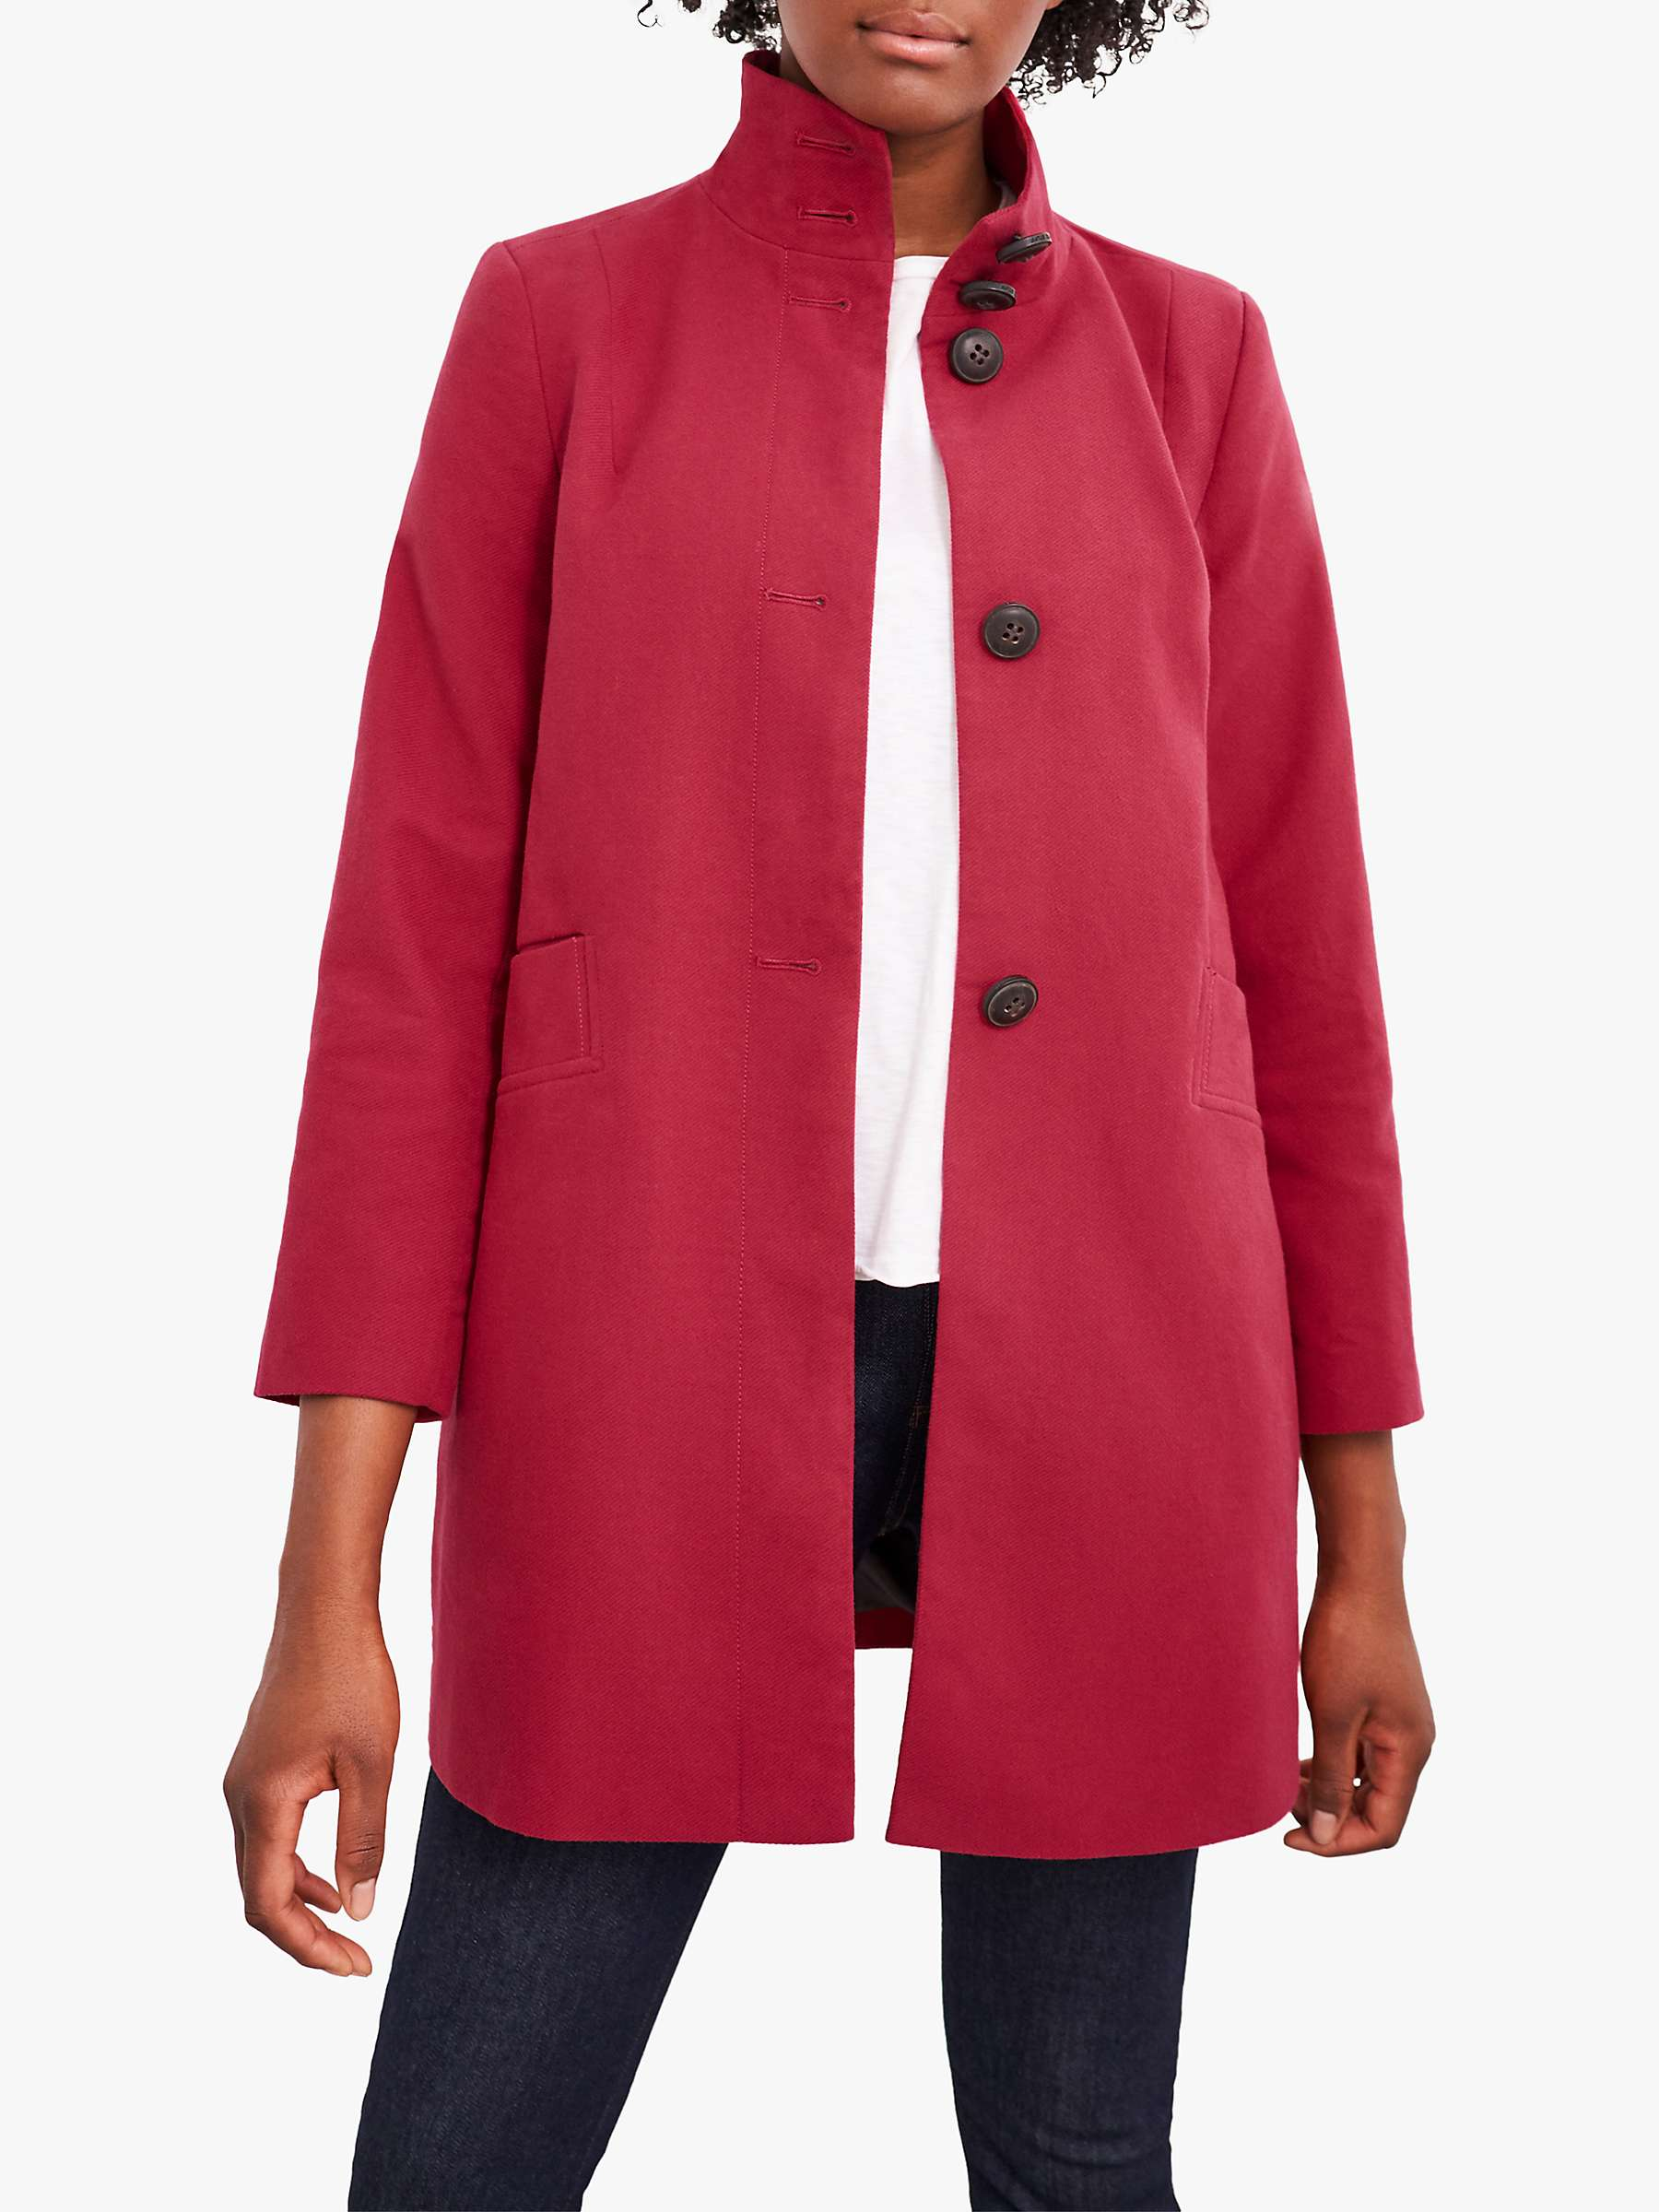 White Stuff Kenley Moleskin Twill Coat, Dark Red